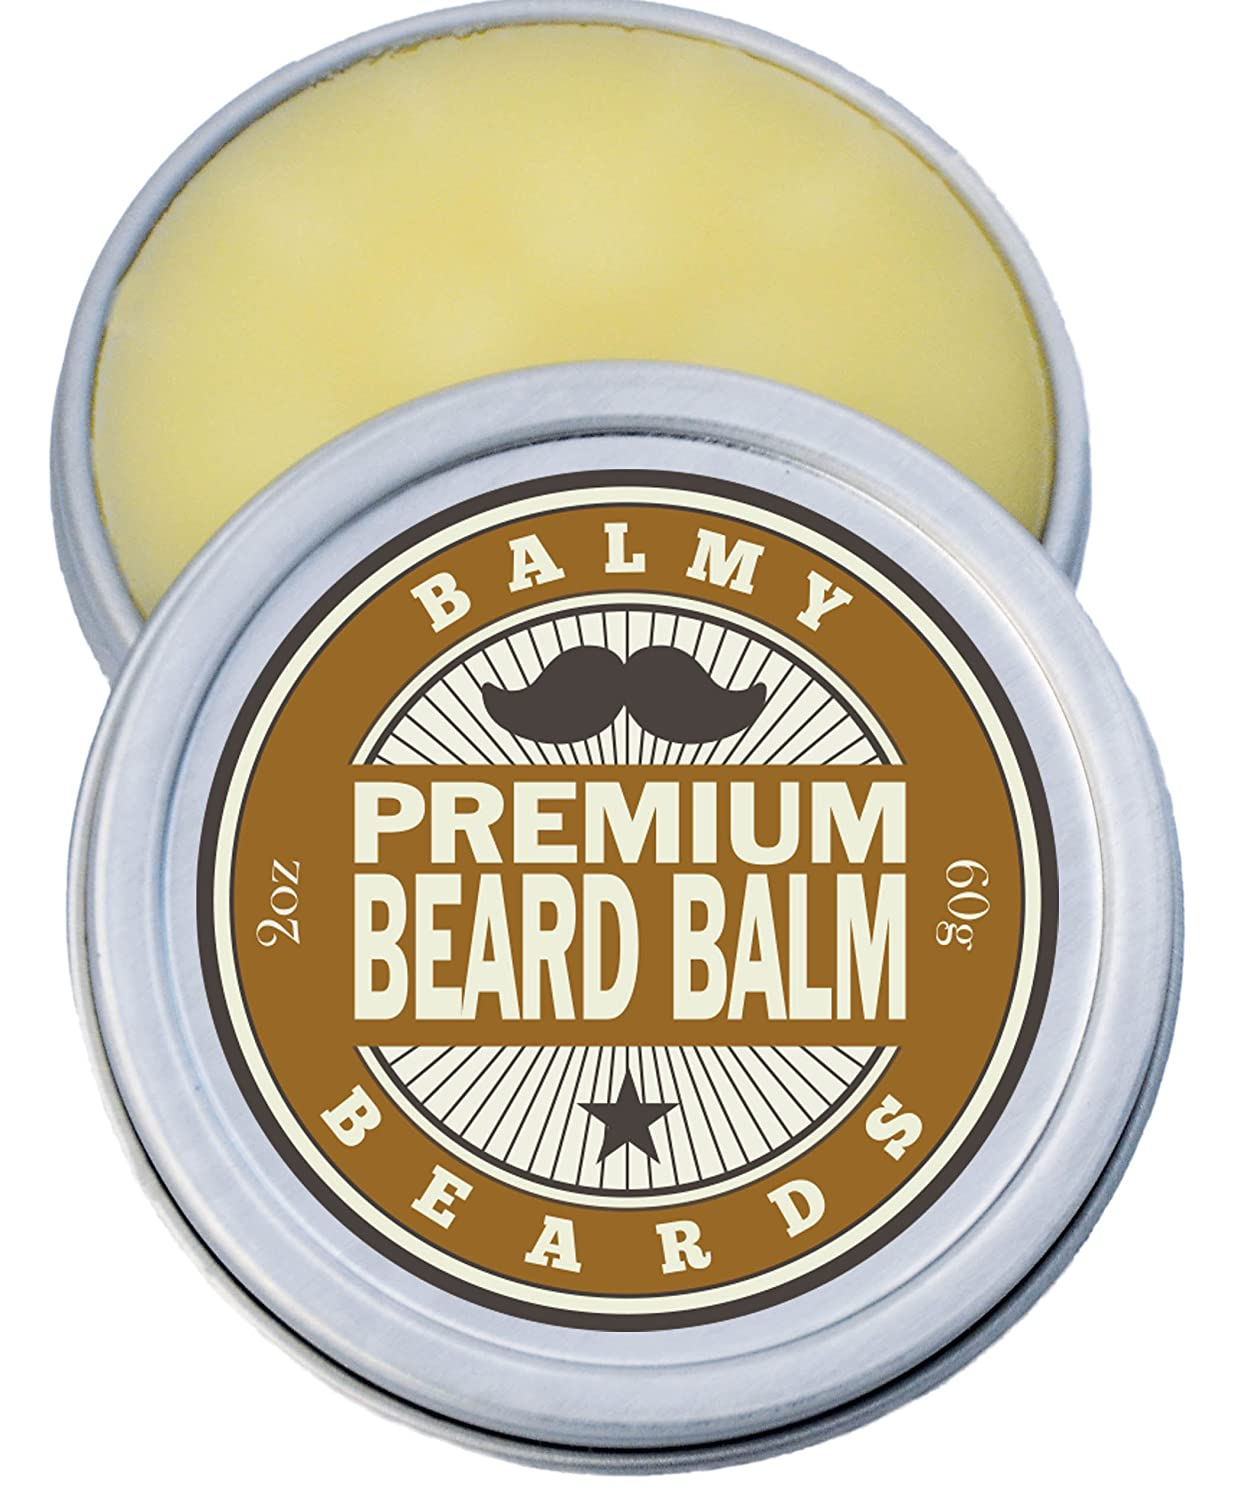 Best Beard Balm for Men - Premium Beard Conditioner, Shaper, Softener and Thickener - 100% All Natural - Grows And Grooms Your Beard and Mustache (Cedarwood) Retroprice